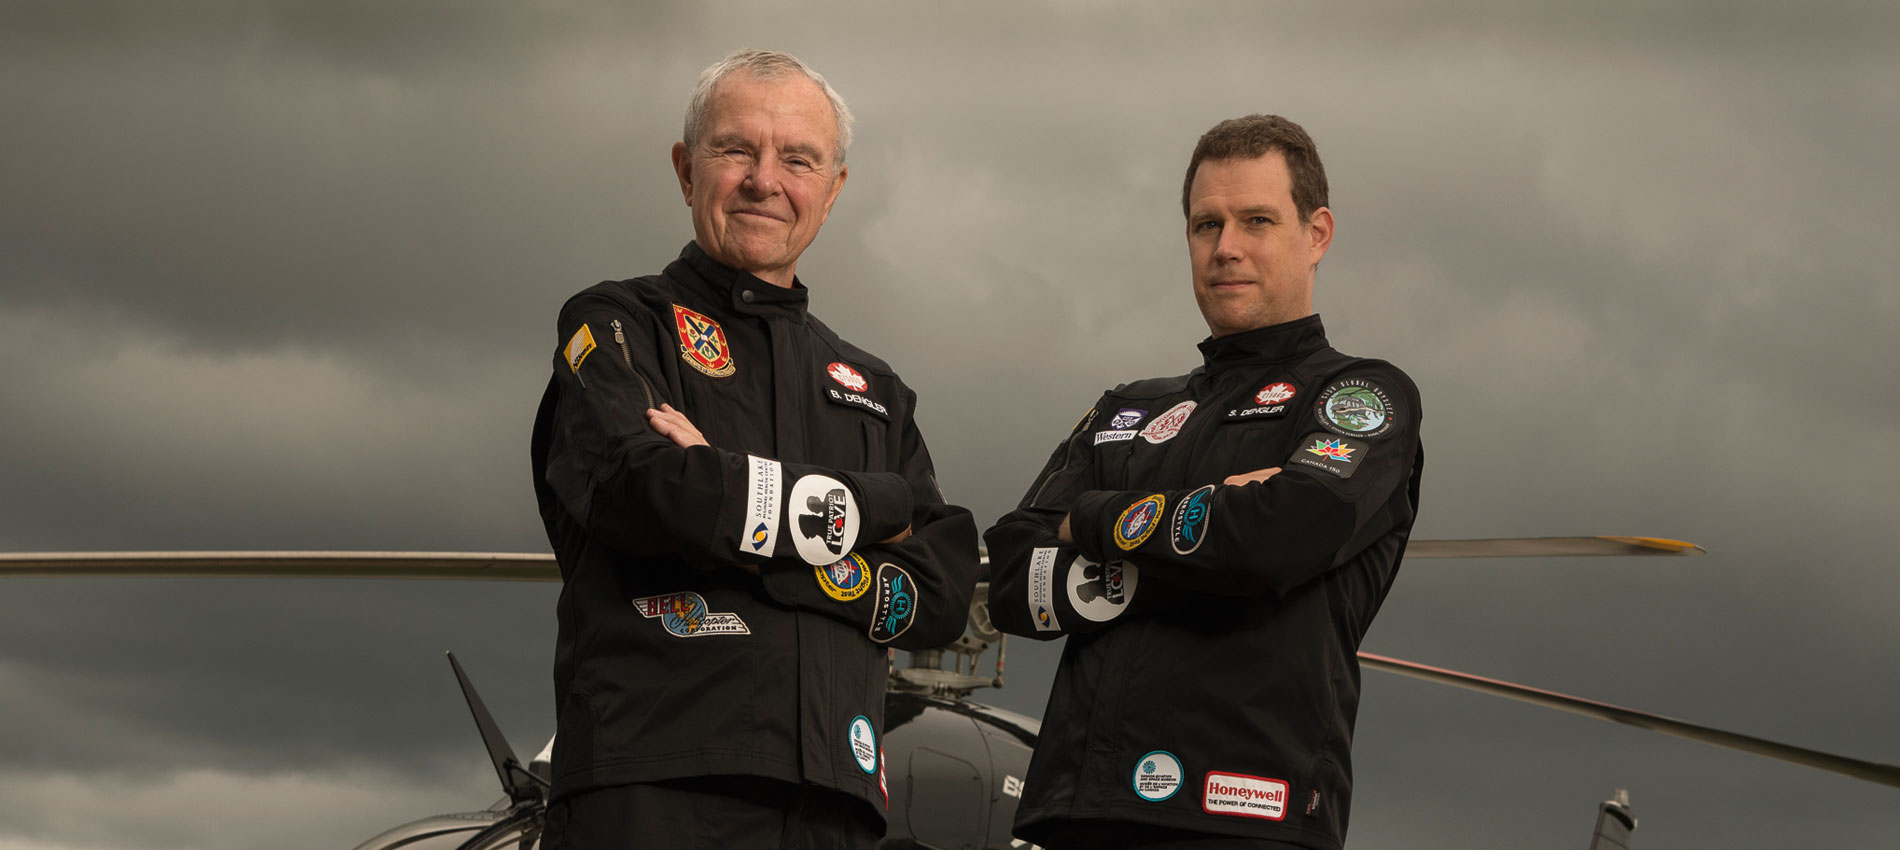 Father and son, Steven and Bob Dengler pose in front of their helicopter with their arms crossed, wearing black pilot uniforms.